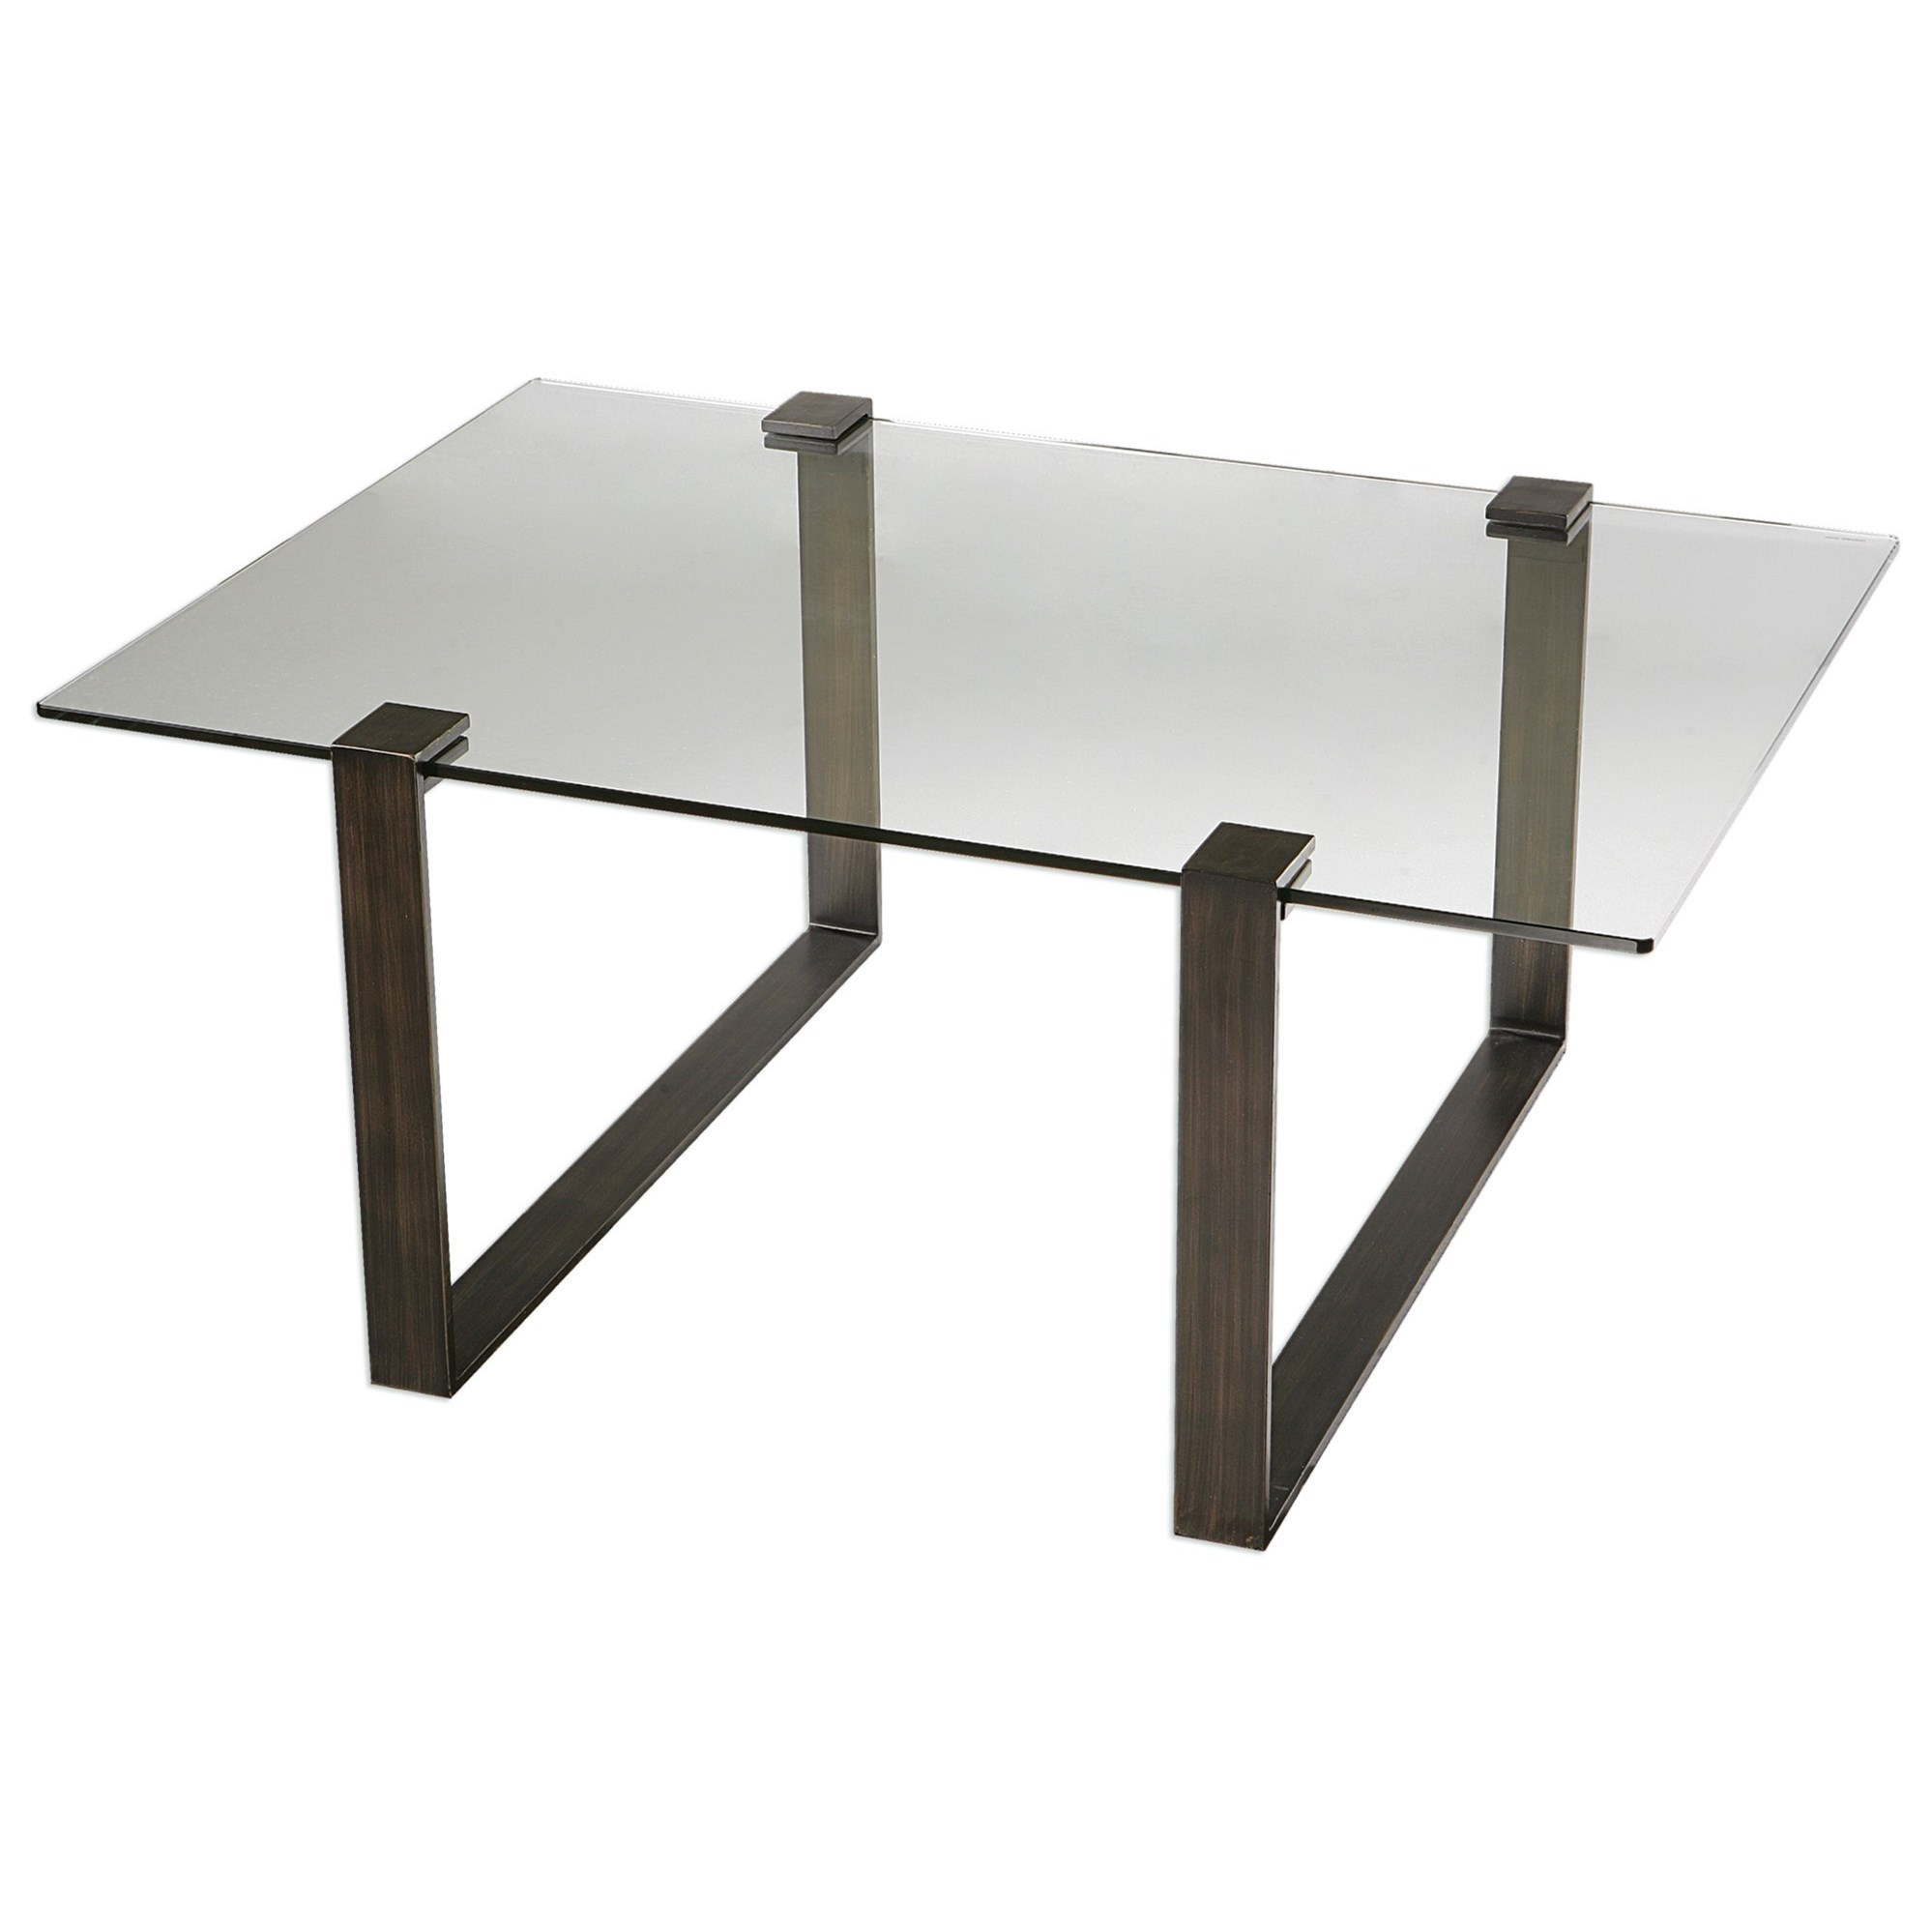 Uttermost Accent Furniture Chadwick Coffee Table - Item Number: 24674